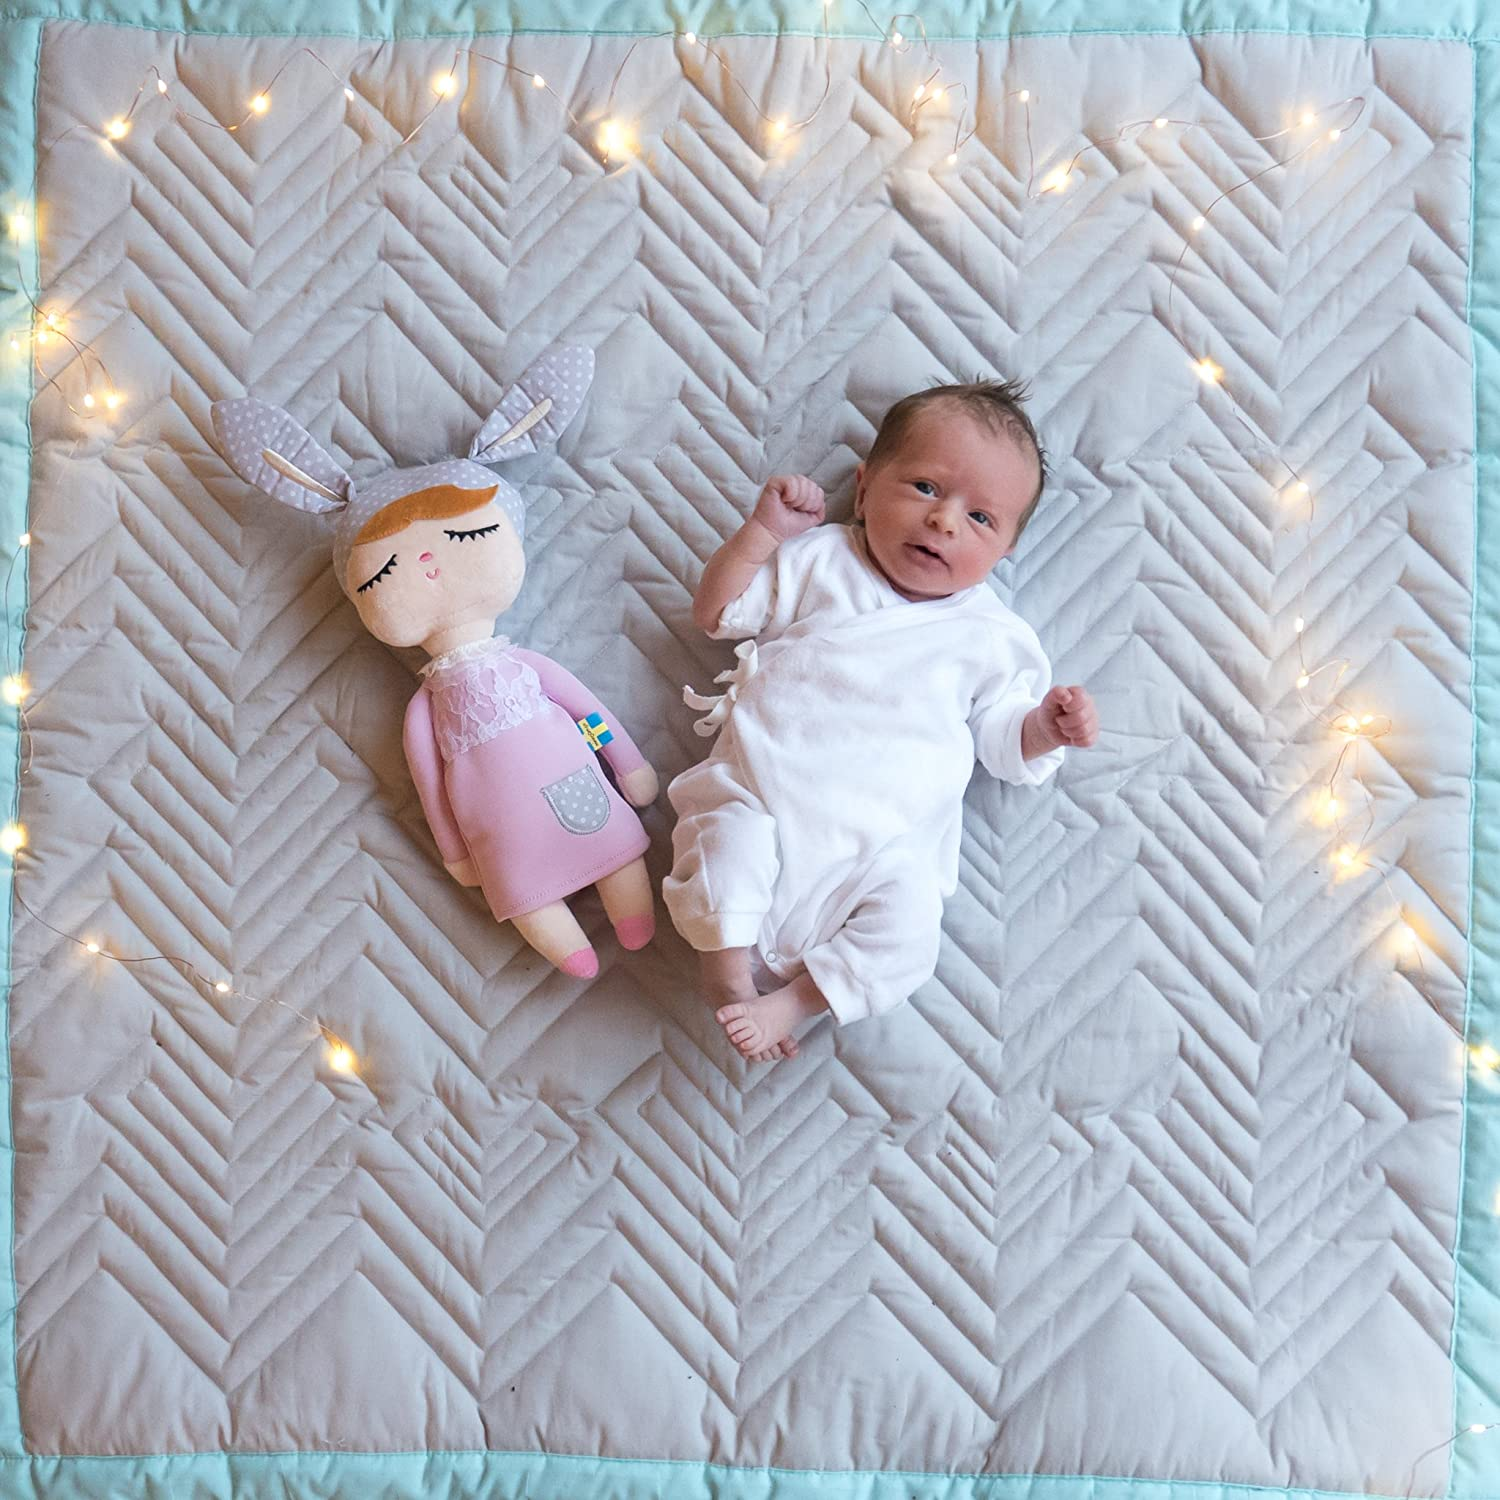 Mama Designs Luxury Quilted Padded Baby Playmat 100/% Cotton 100cm x 100cm in Grey with Turquoise Trim